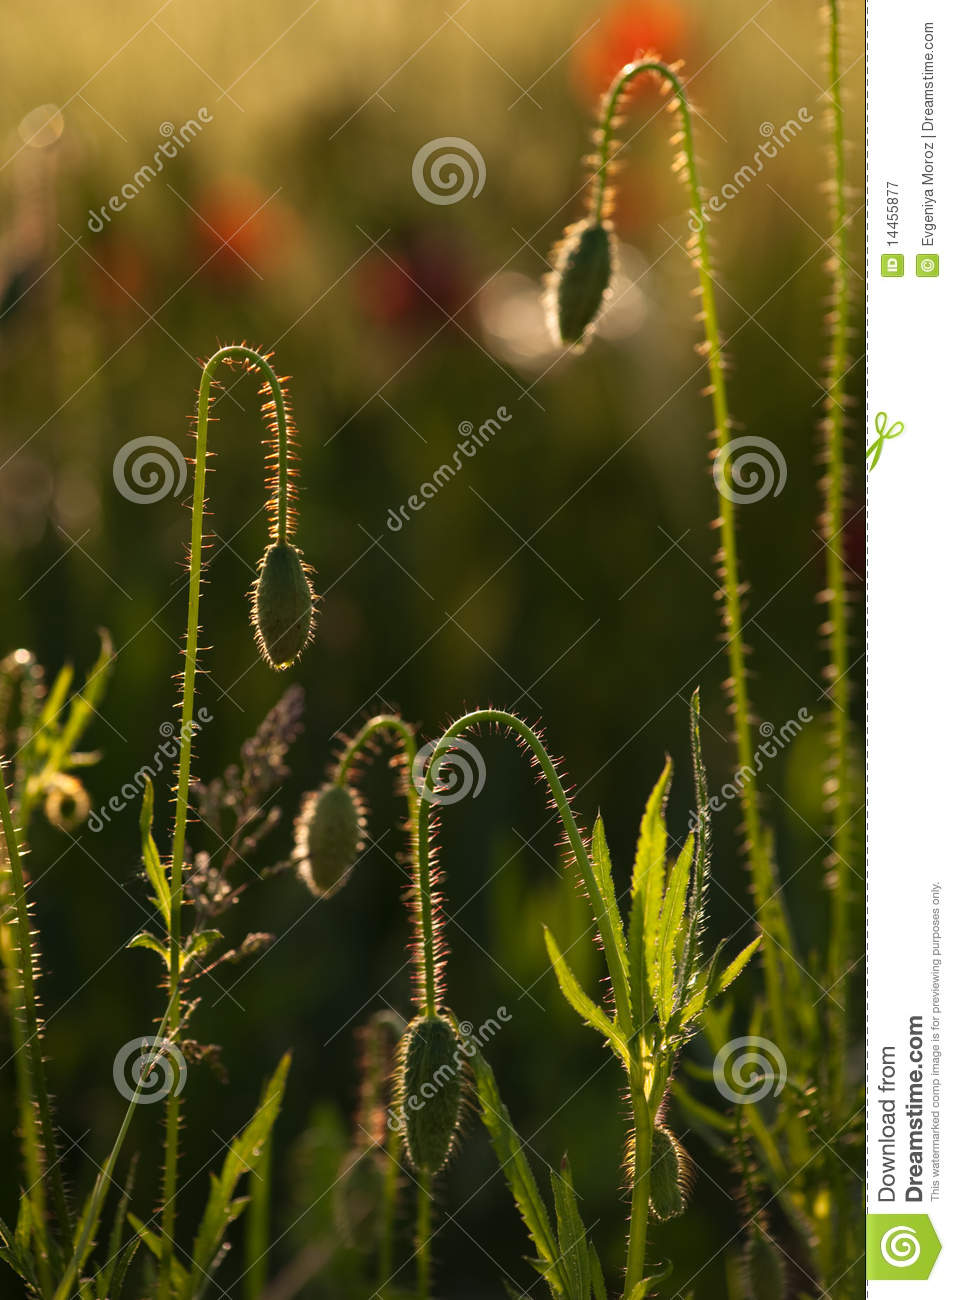 Download Poppy Flowers Buds Close-up Stock Image - Image of plant, haulm: 14455877